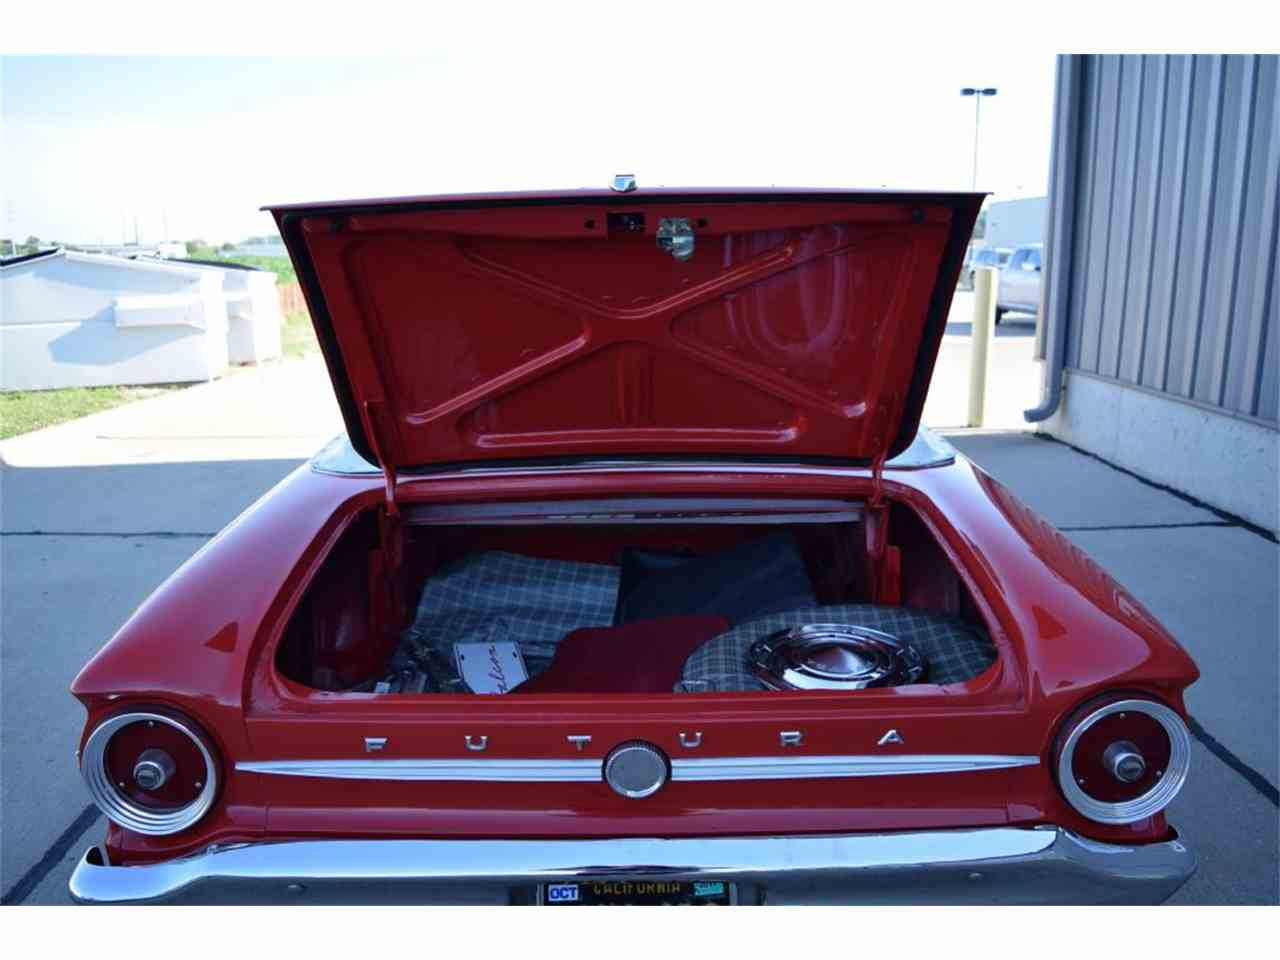 Large Picture of Classic '63 Ford Falcon Futura located in Iowa - $24,900.00 Offered by Jensen Dealerships - LUN9